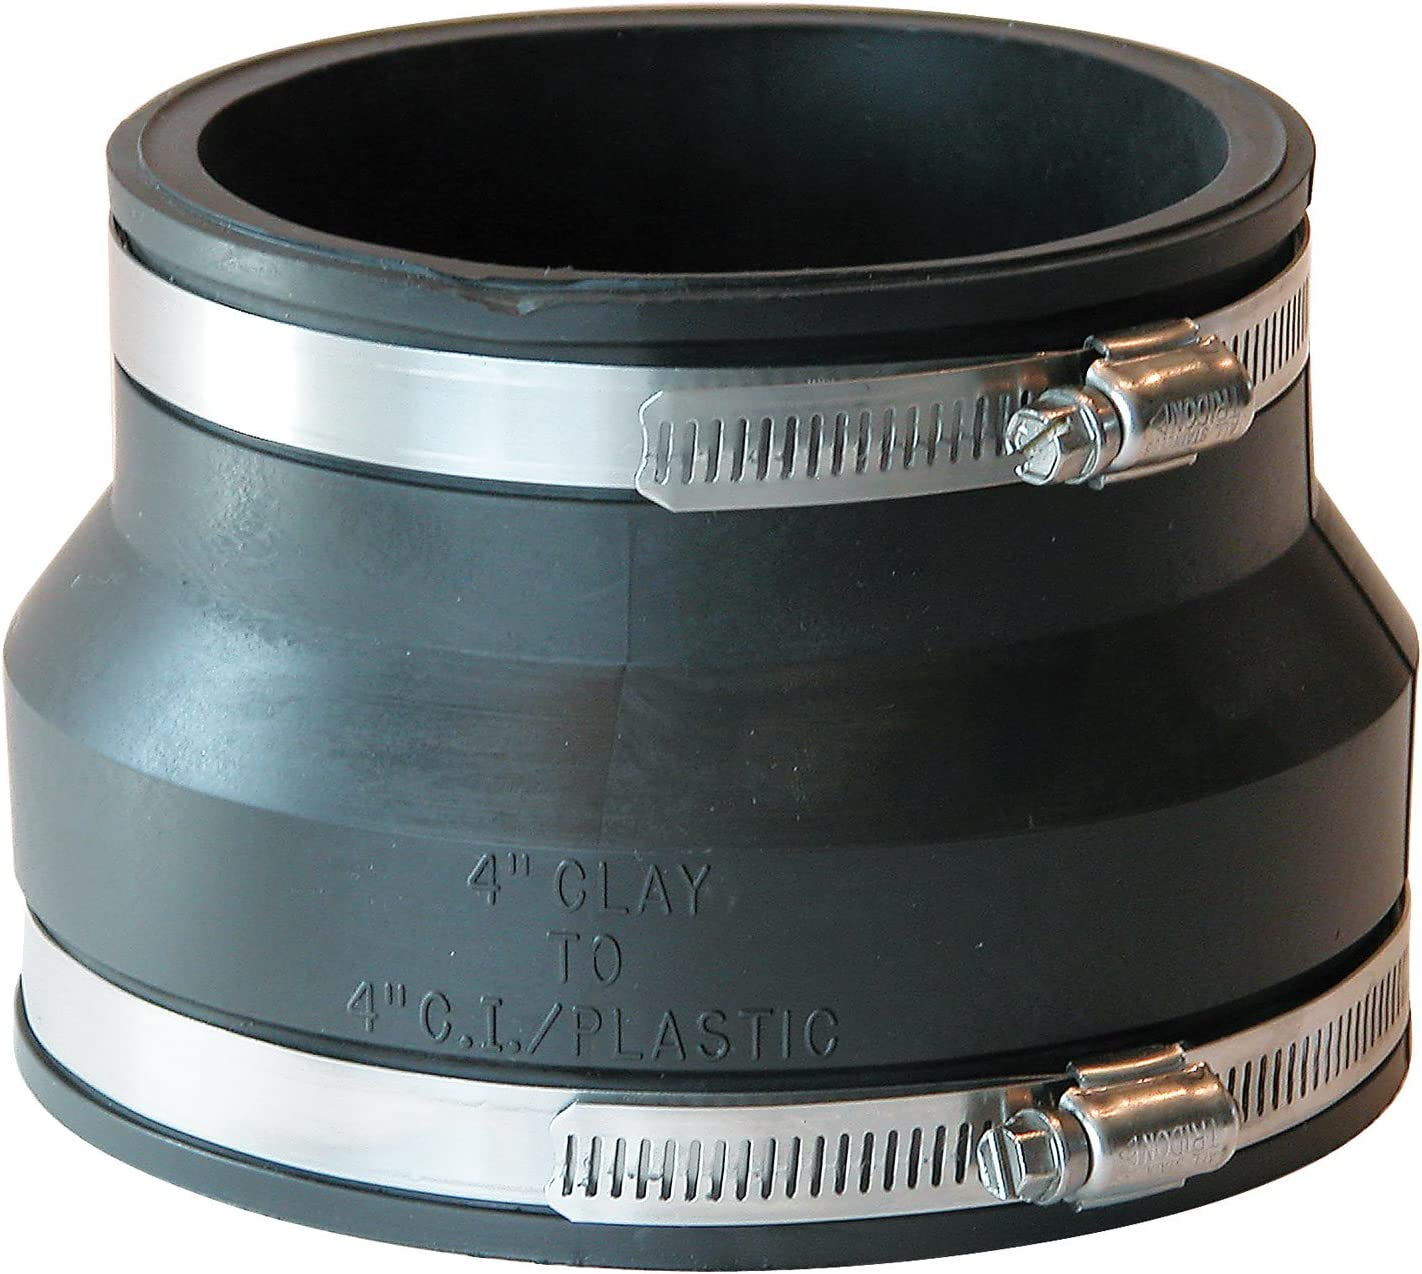 Fernco Inc P1002-44 4-Inch Clay To 4-Inch Cast Iron Or Plastic Coupling